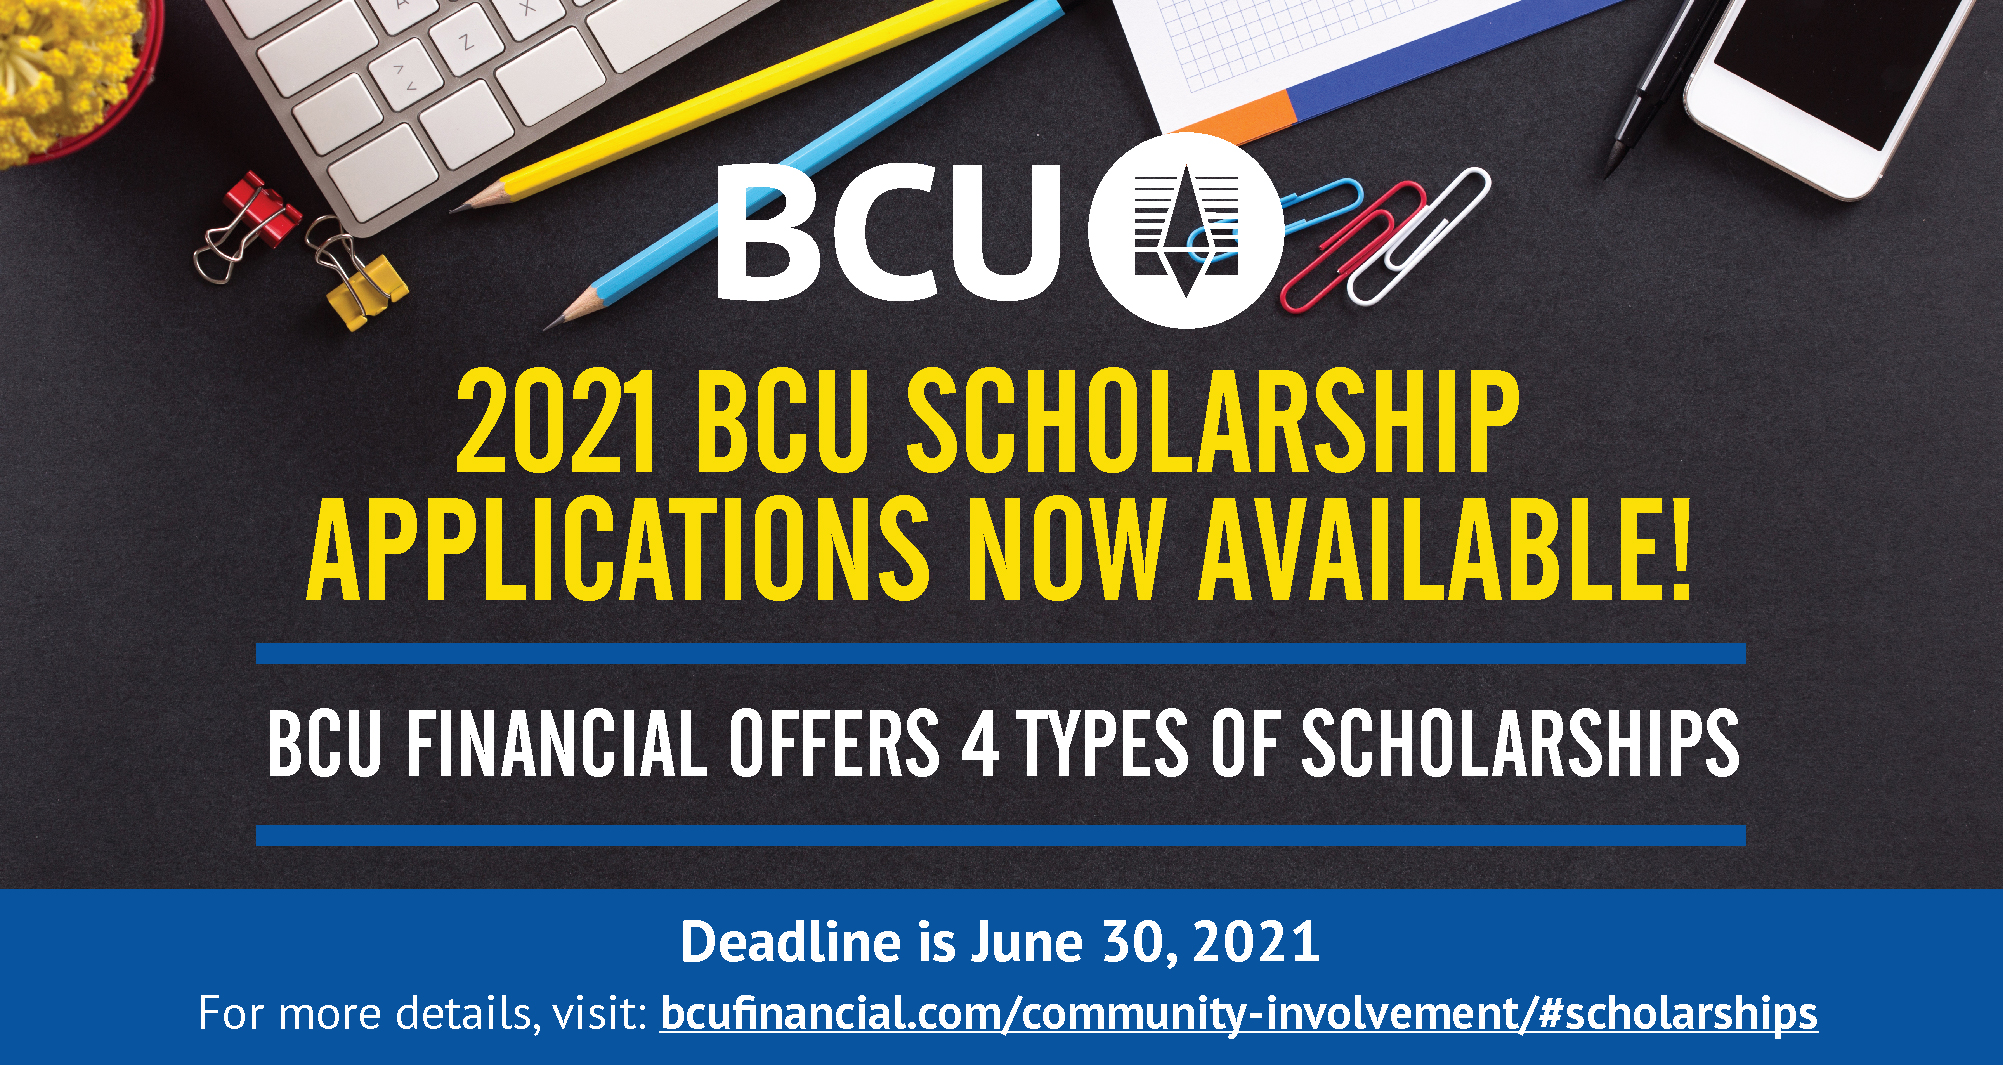 2021 BCU Scholarship applications now available